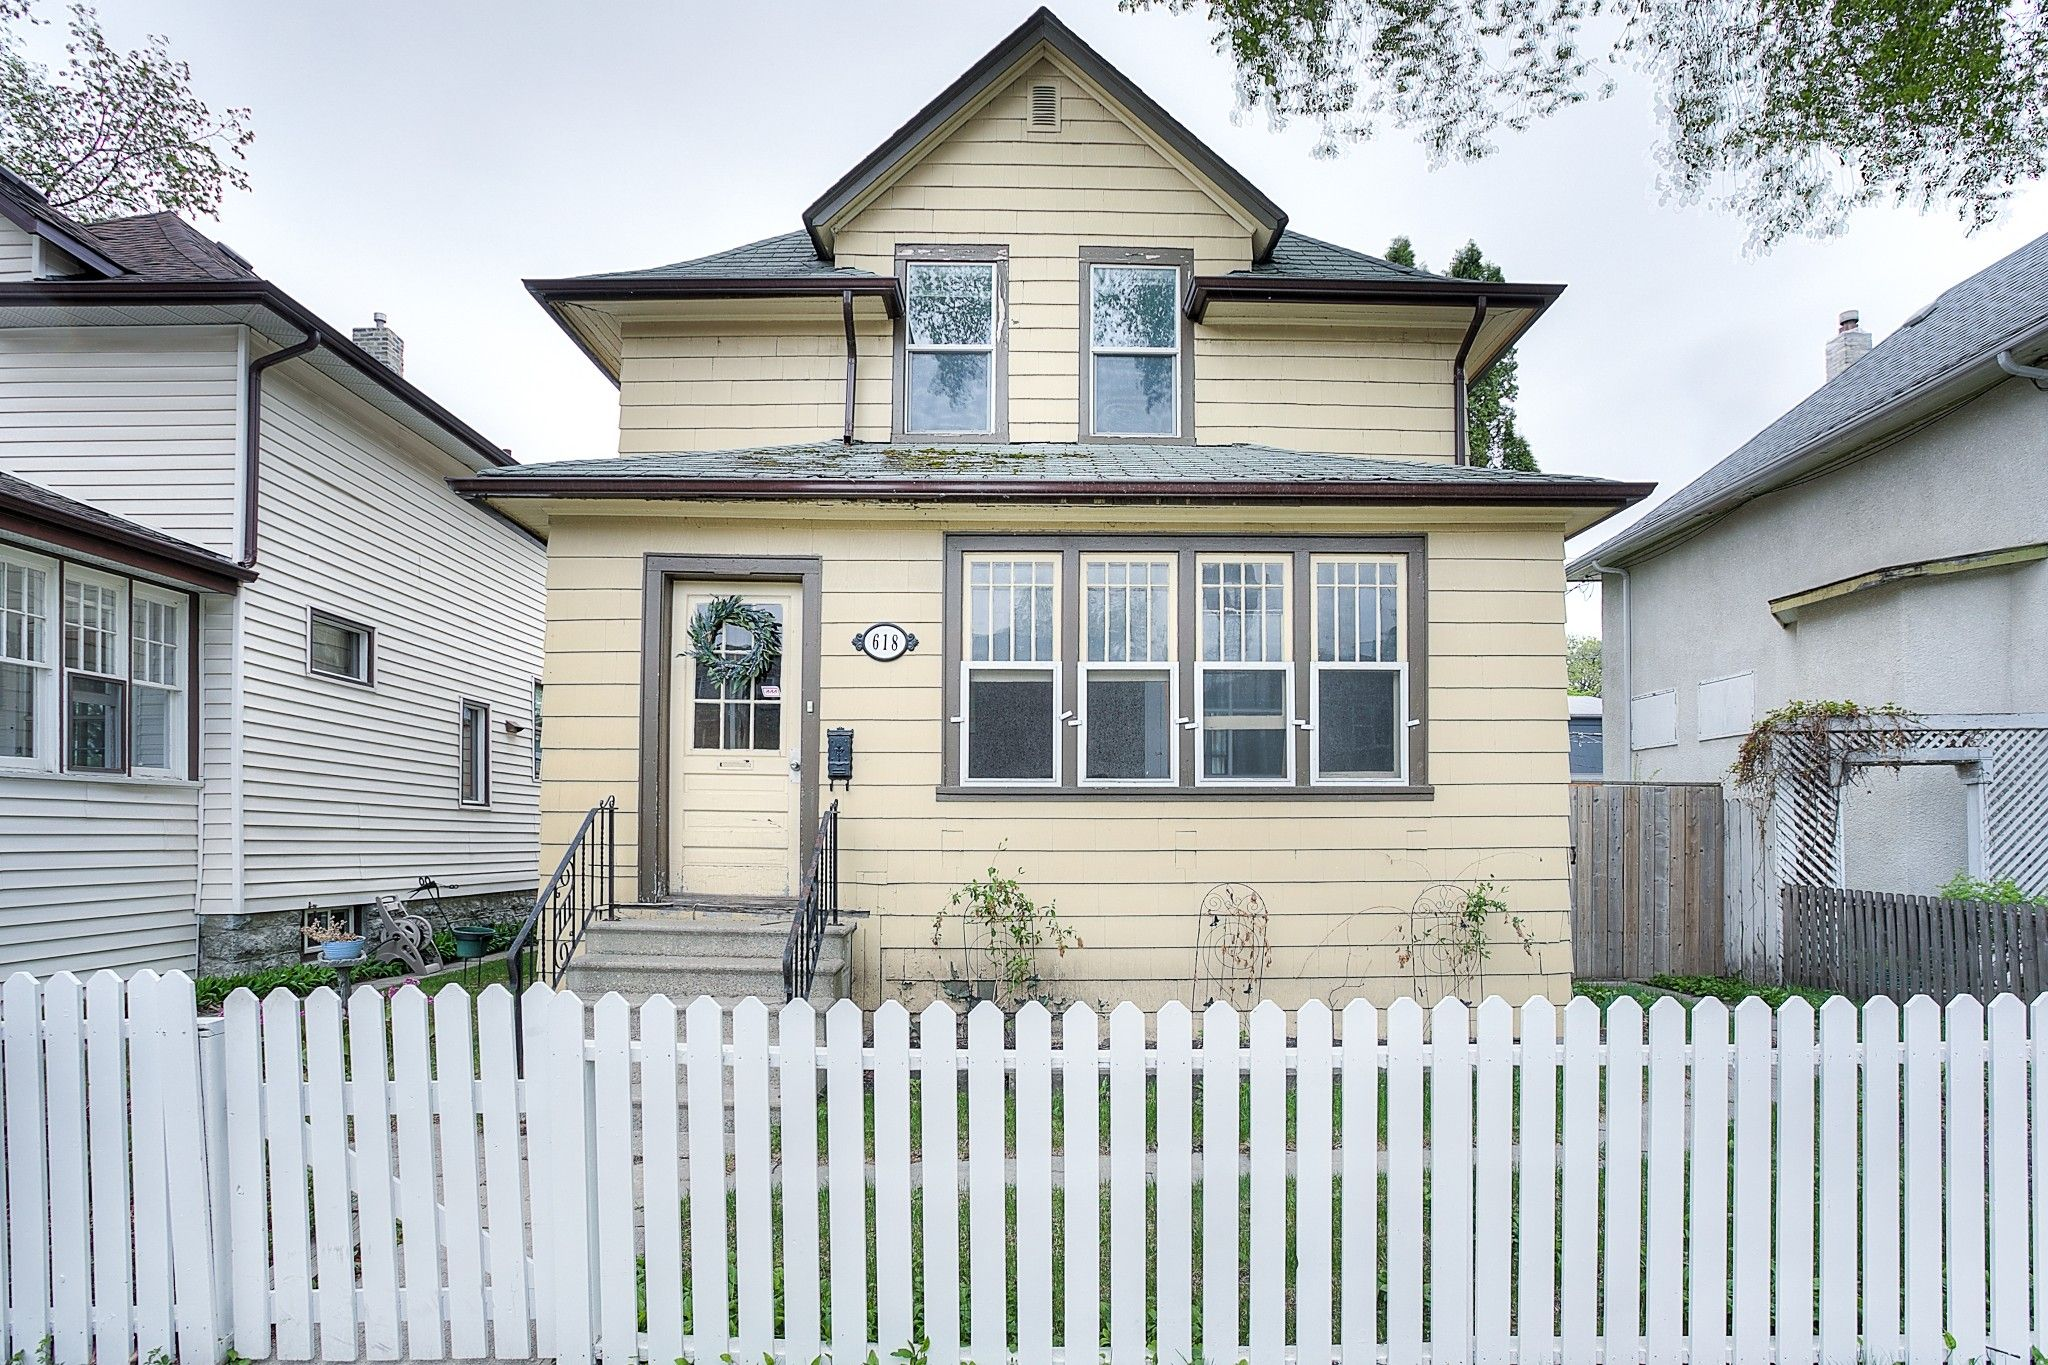 Main Photo: 618 Warsaw Avenue in Winnipeg: Crescentwood Single Family Detached for sale (1B)  : MLS®# 202112451